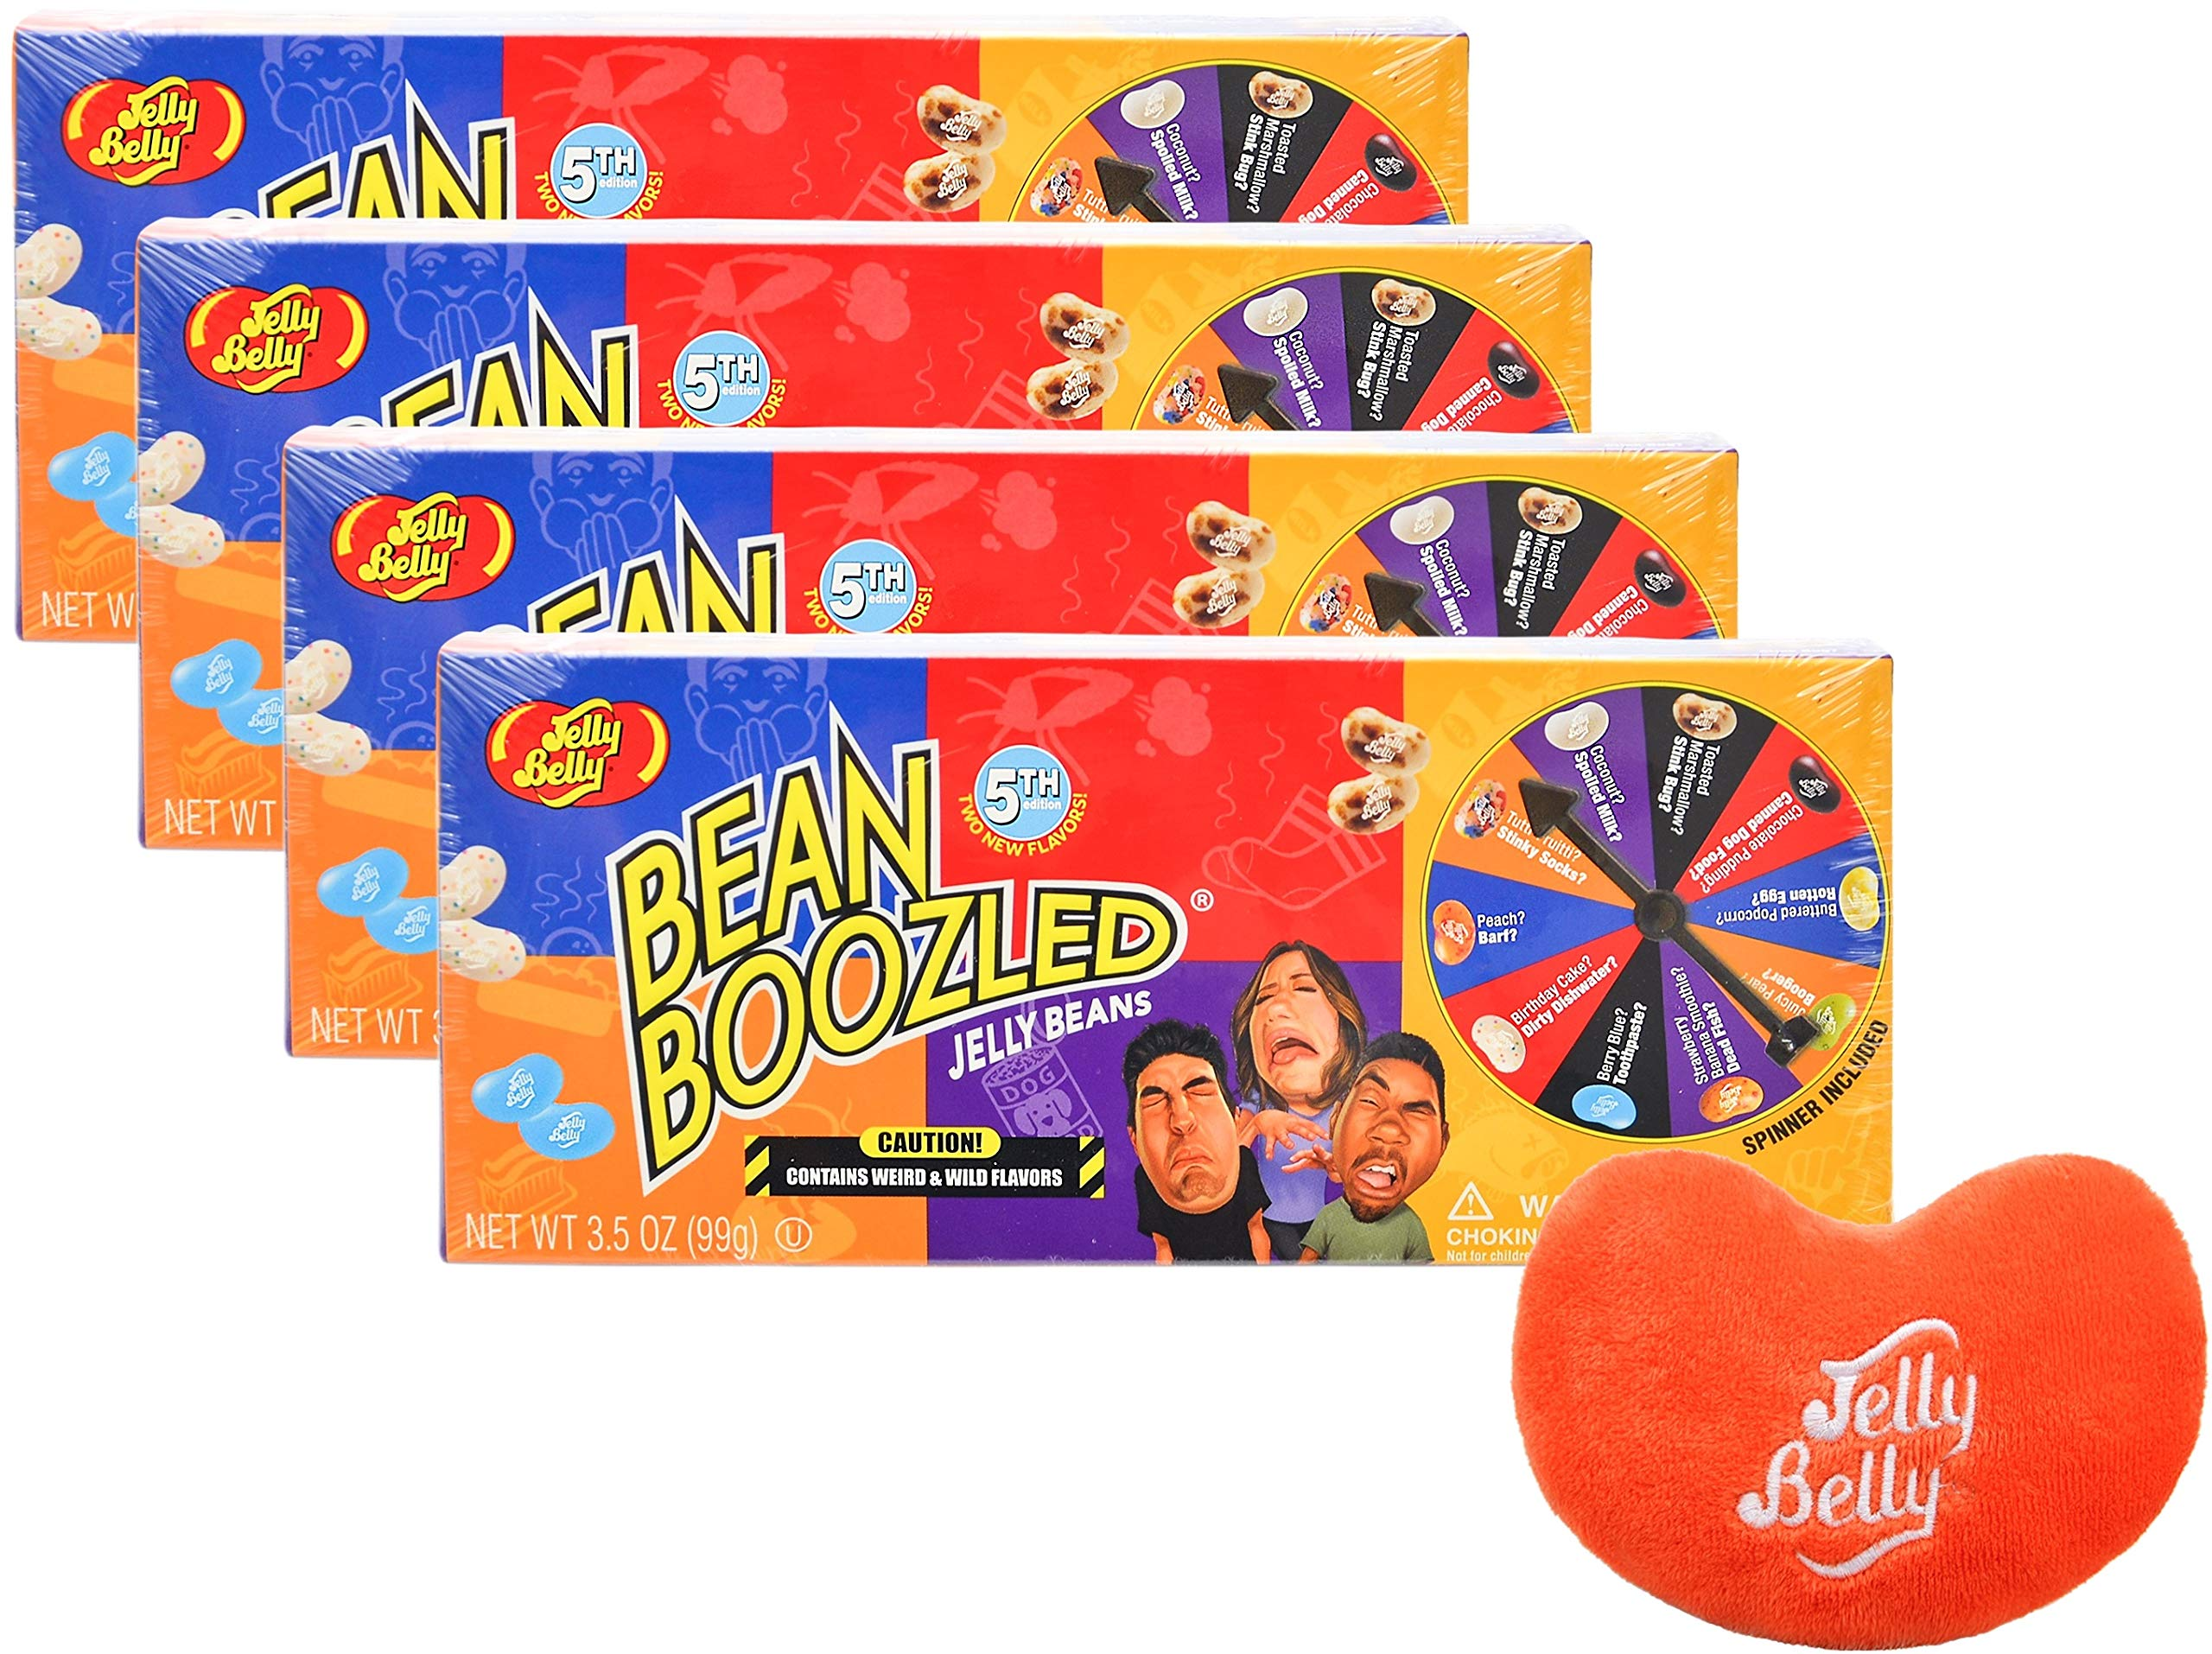 Jelly Belly Jelly Beans Bean Boozled 5th Edition Jelly Beans Spinner Game Box, Gluten Free 3.5 Ounce (Pack of 4) - with Jelly Belly Emoji Mini Plush Toy